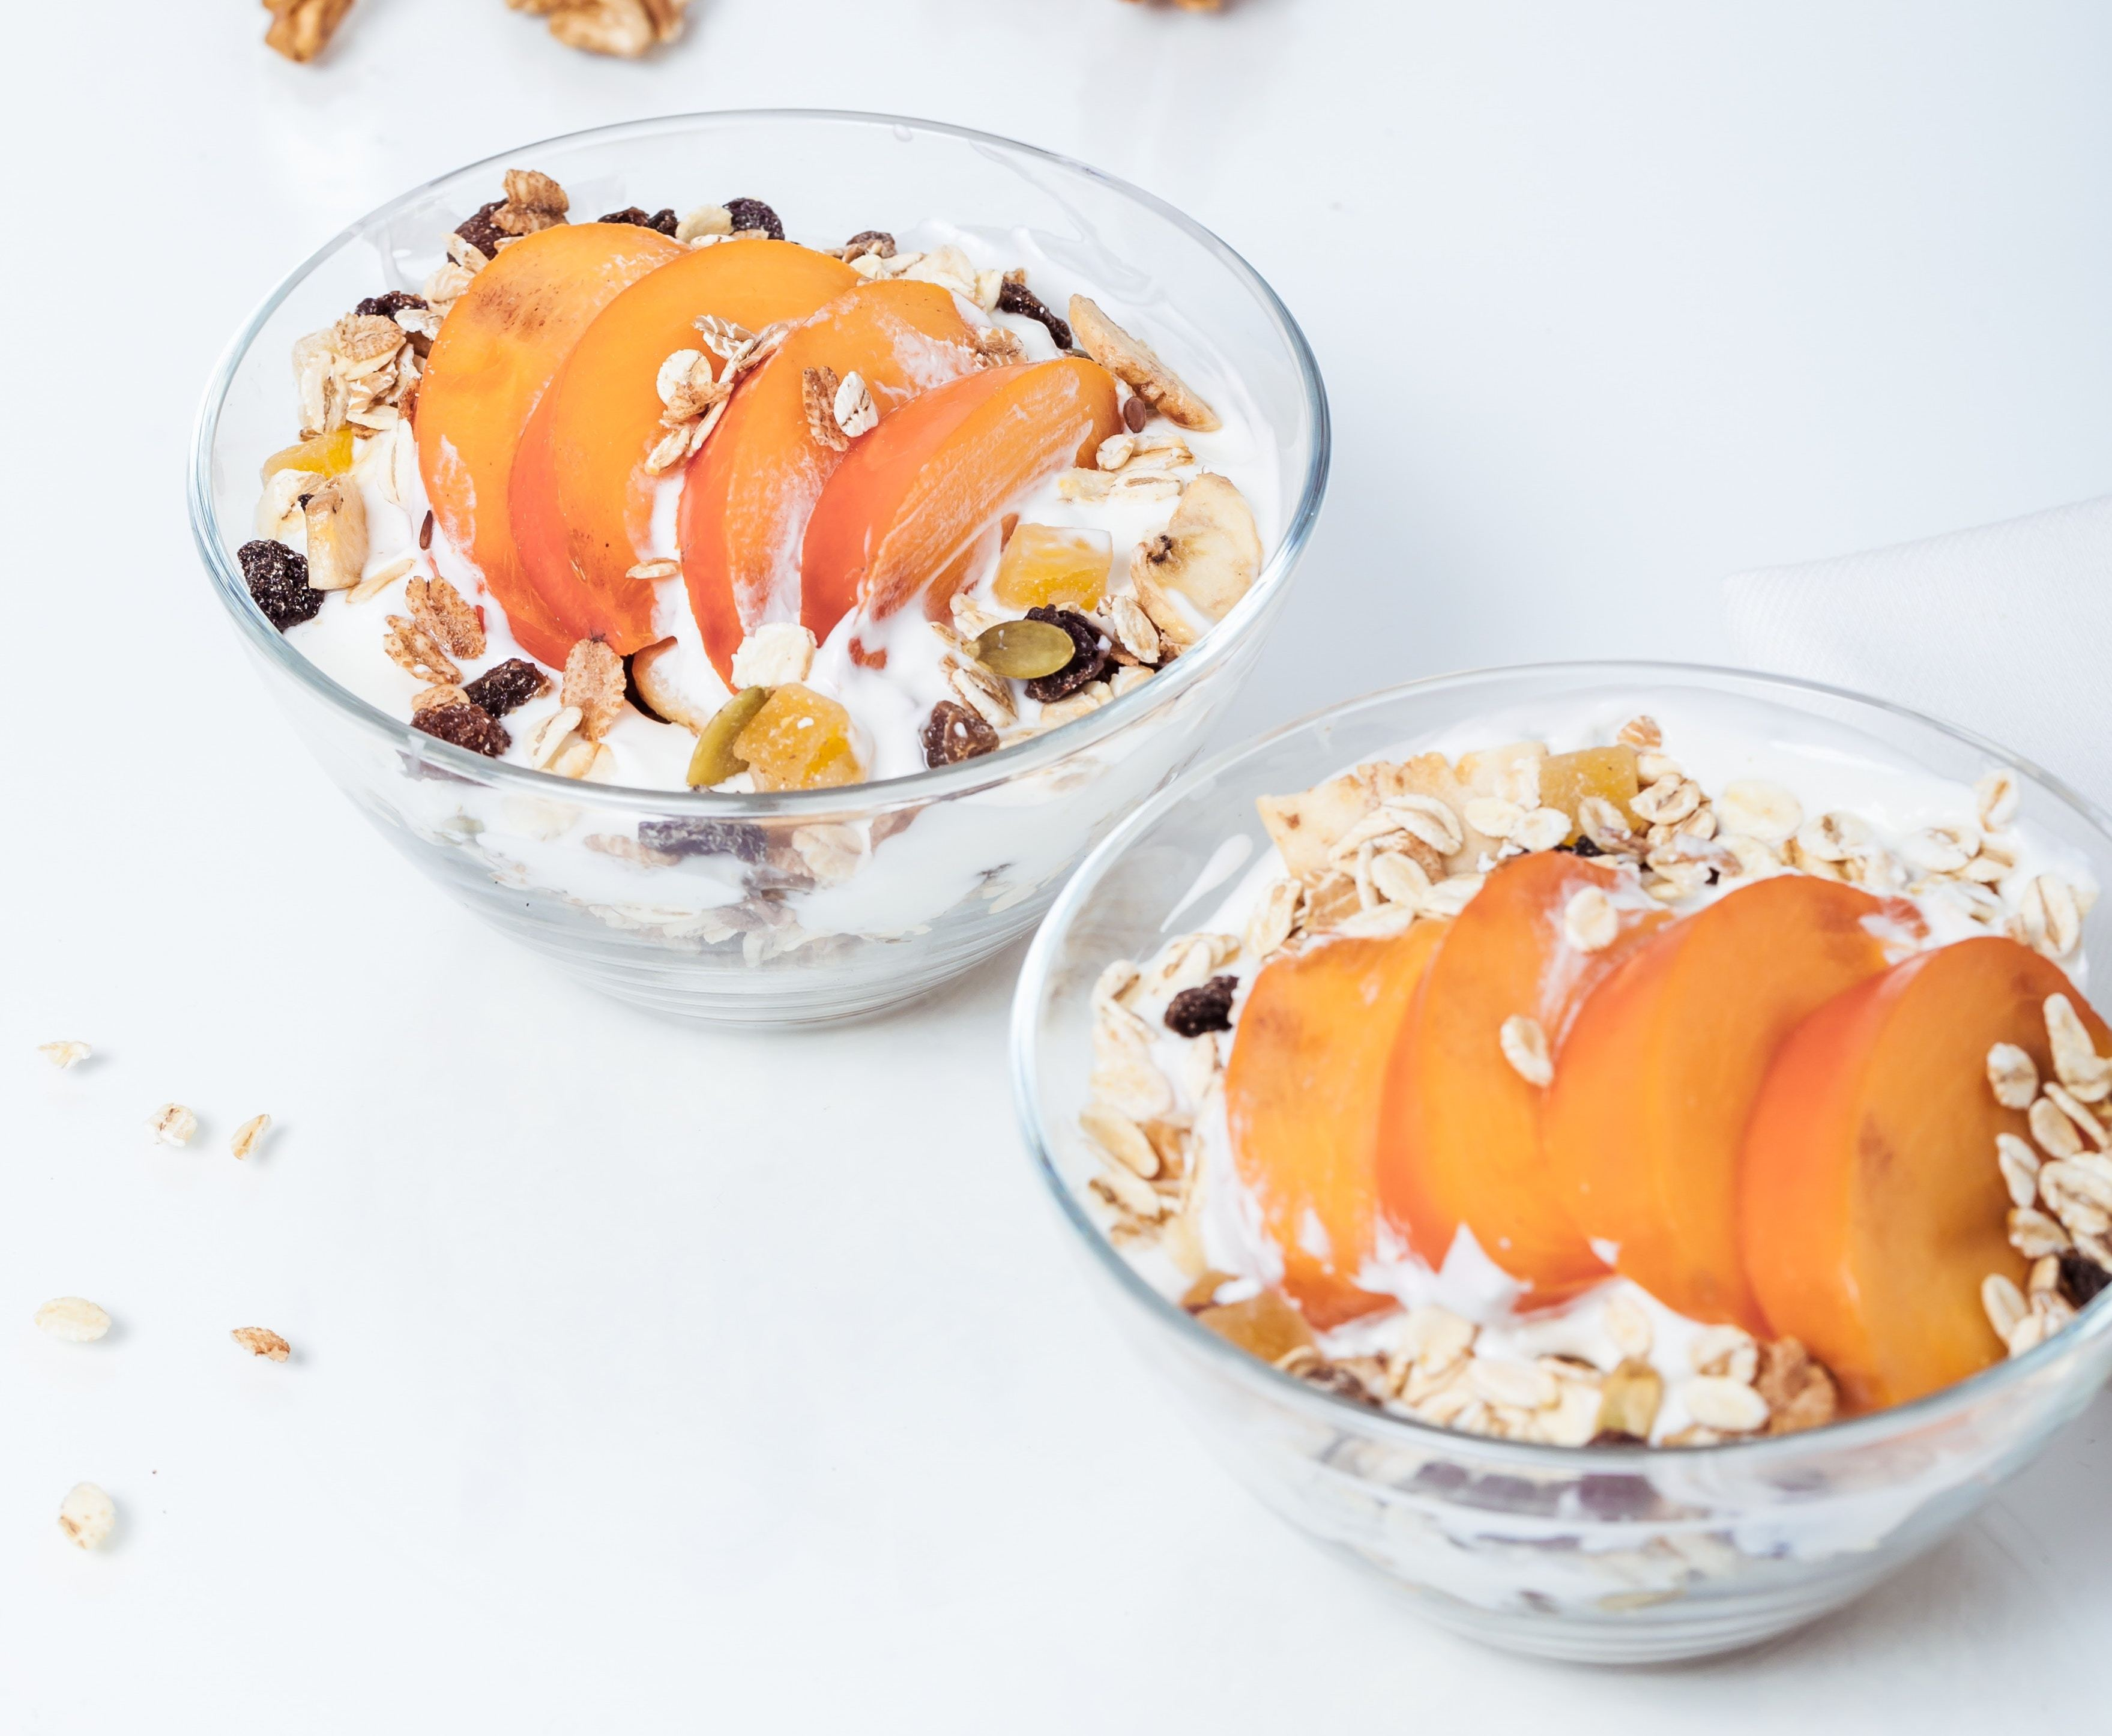 Yogurt and peaches in small breakfast bowls